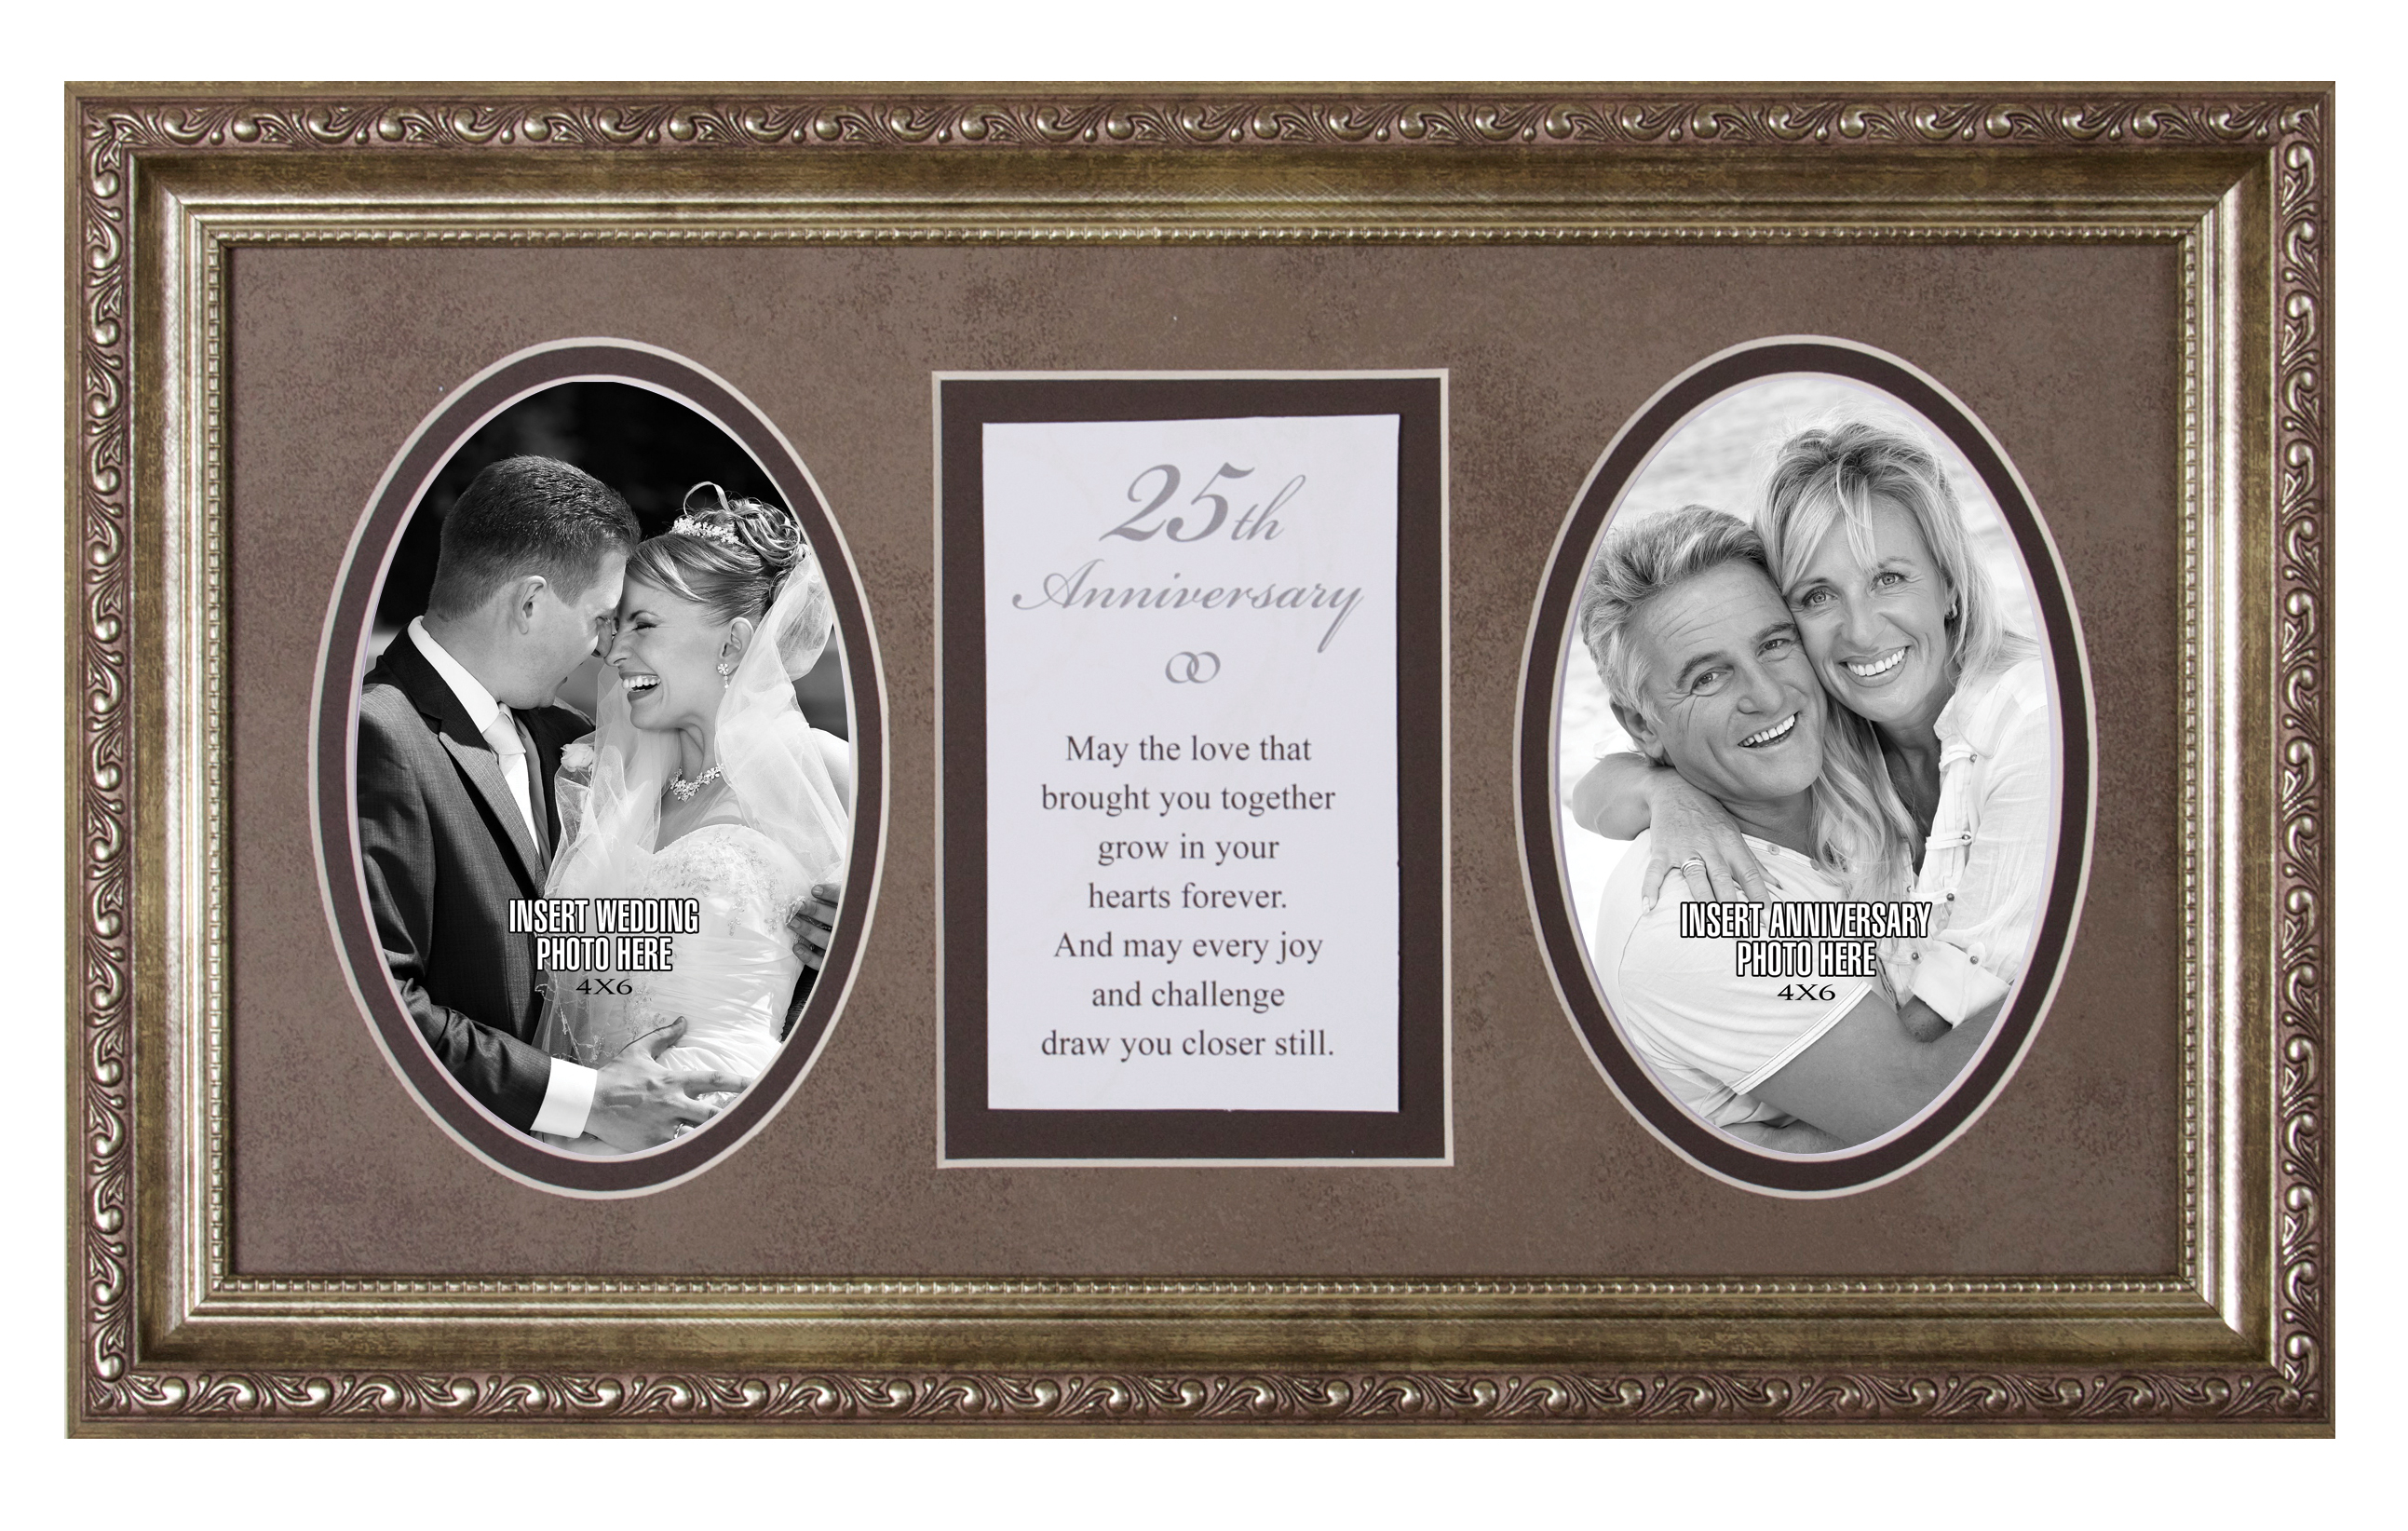 25th Anniversary Photo Frame with Verse framed picture, inspirational message, home decor, wall decor, framed art, words of grace, 2593